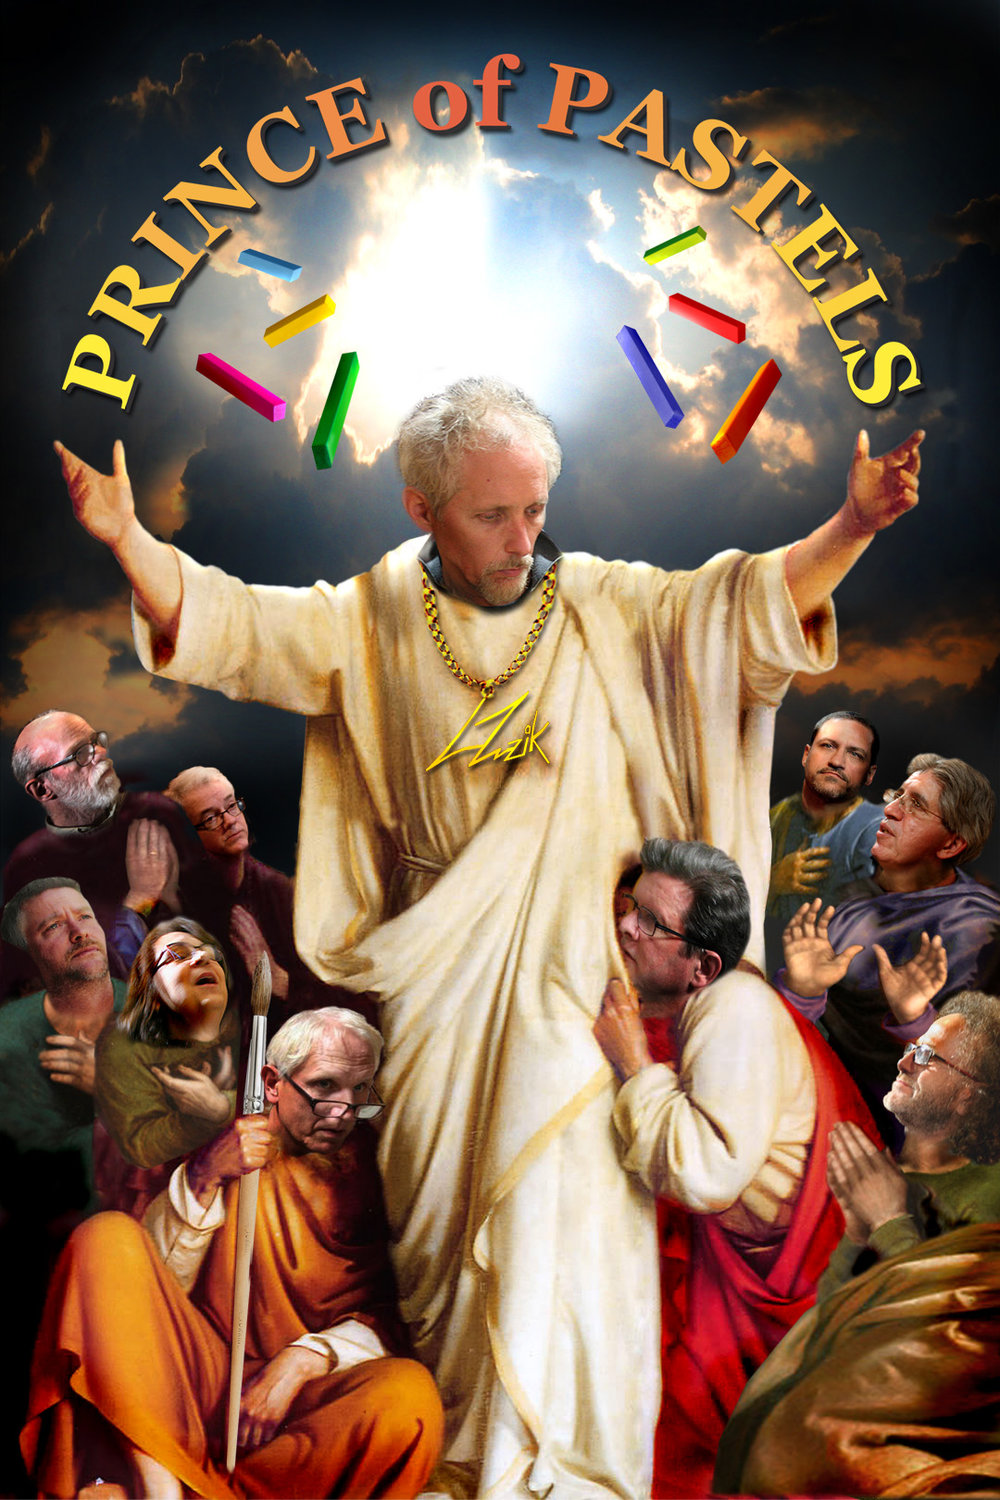 Larry Zuzik - The Prince of Pastels. Photoshop courtesy of Brian Pierce.